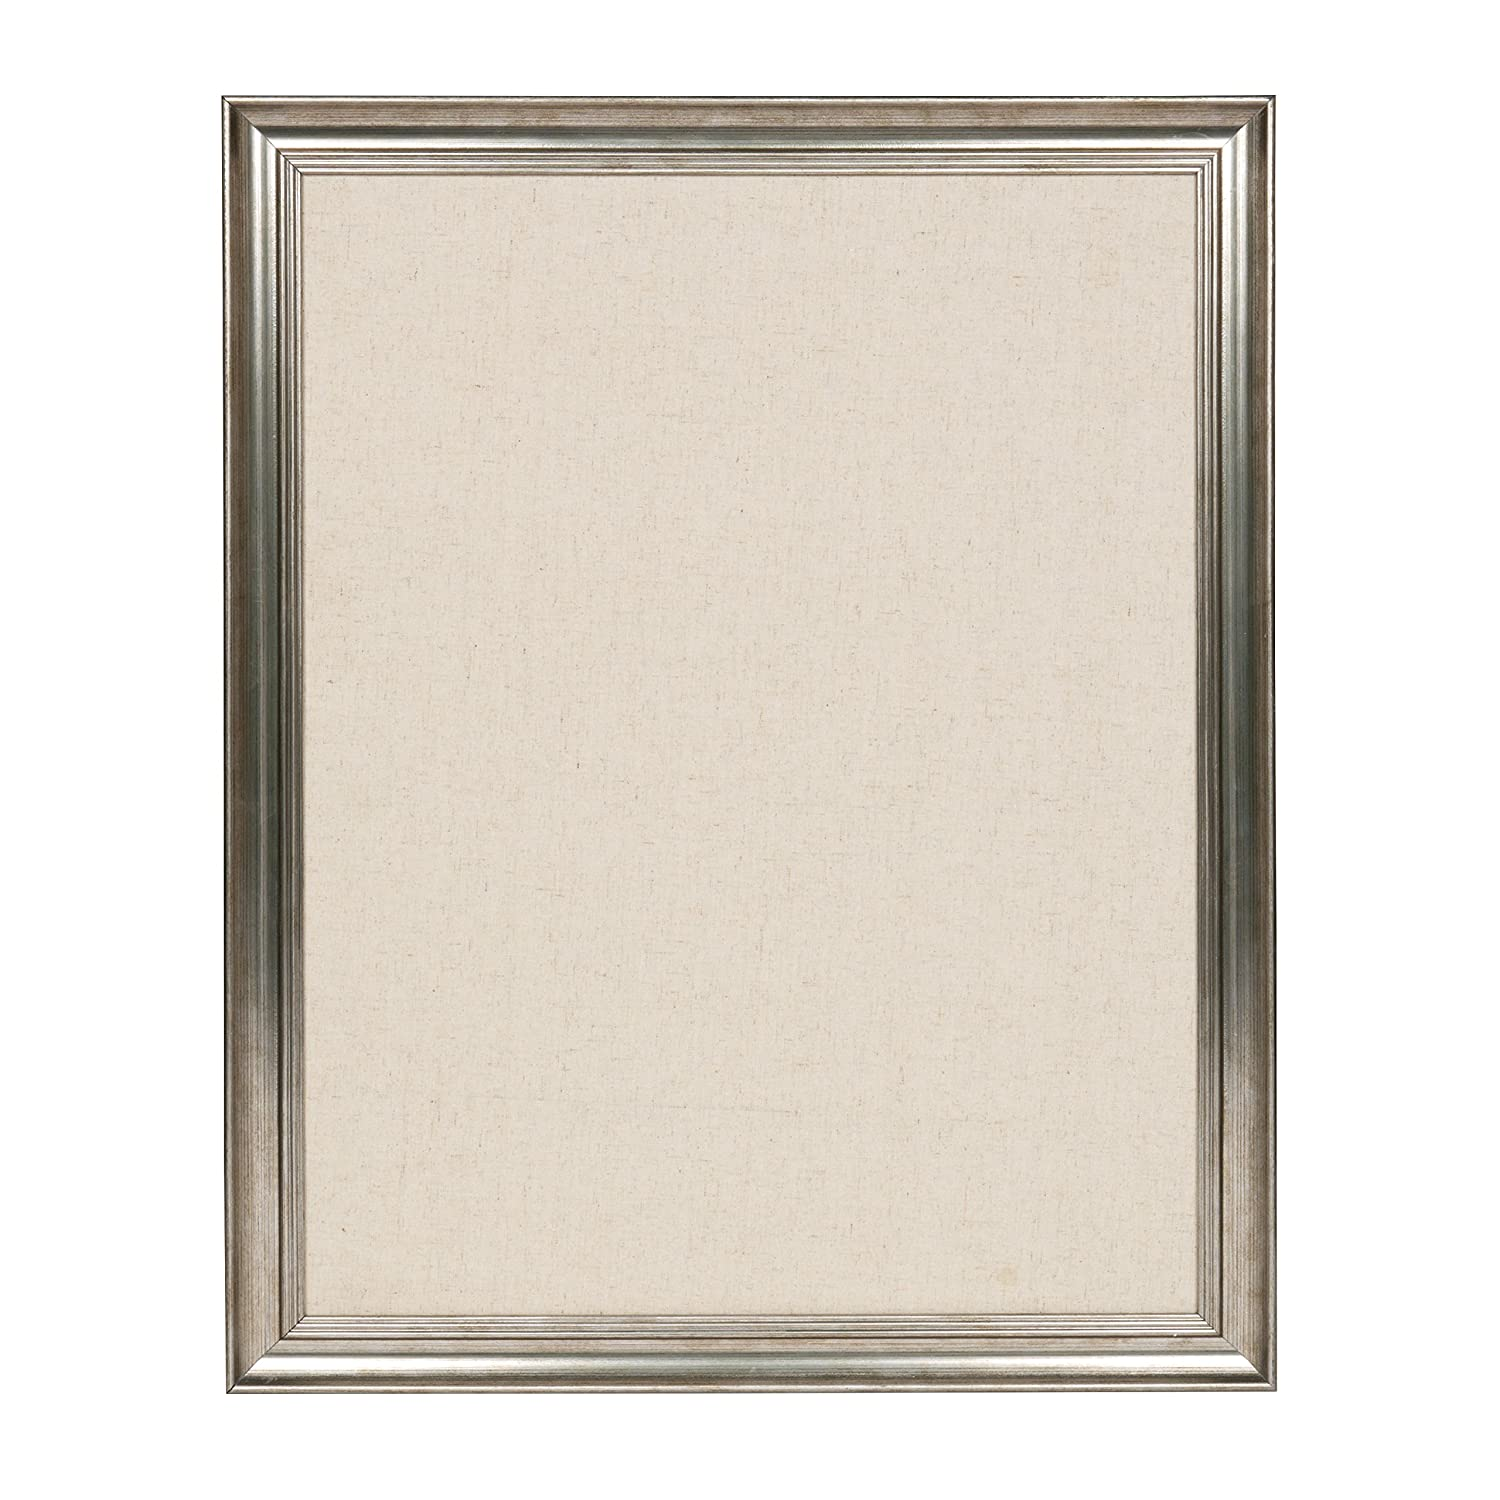 DesignOvation Macon Framed Linen Fabric Pinboard, 23x29, Pewter Uniek 211672